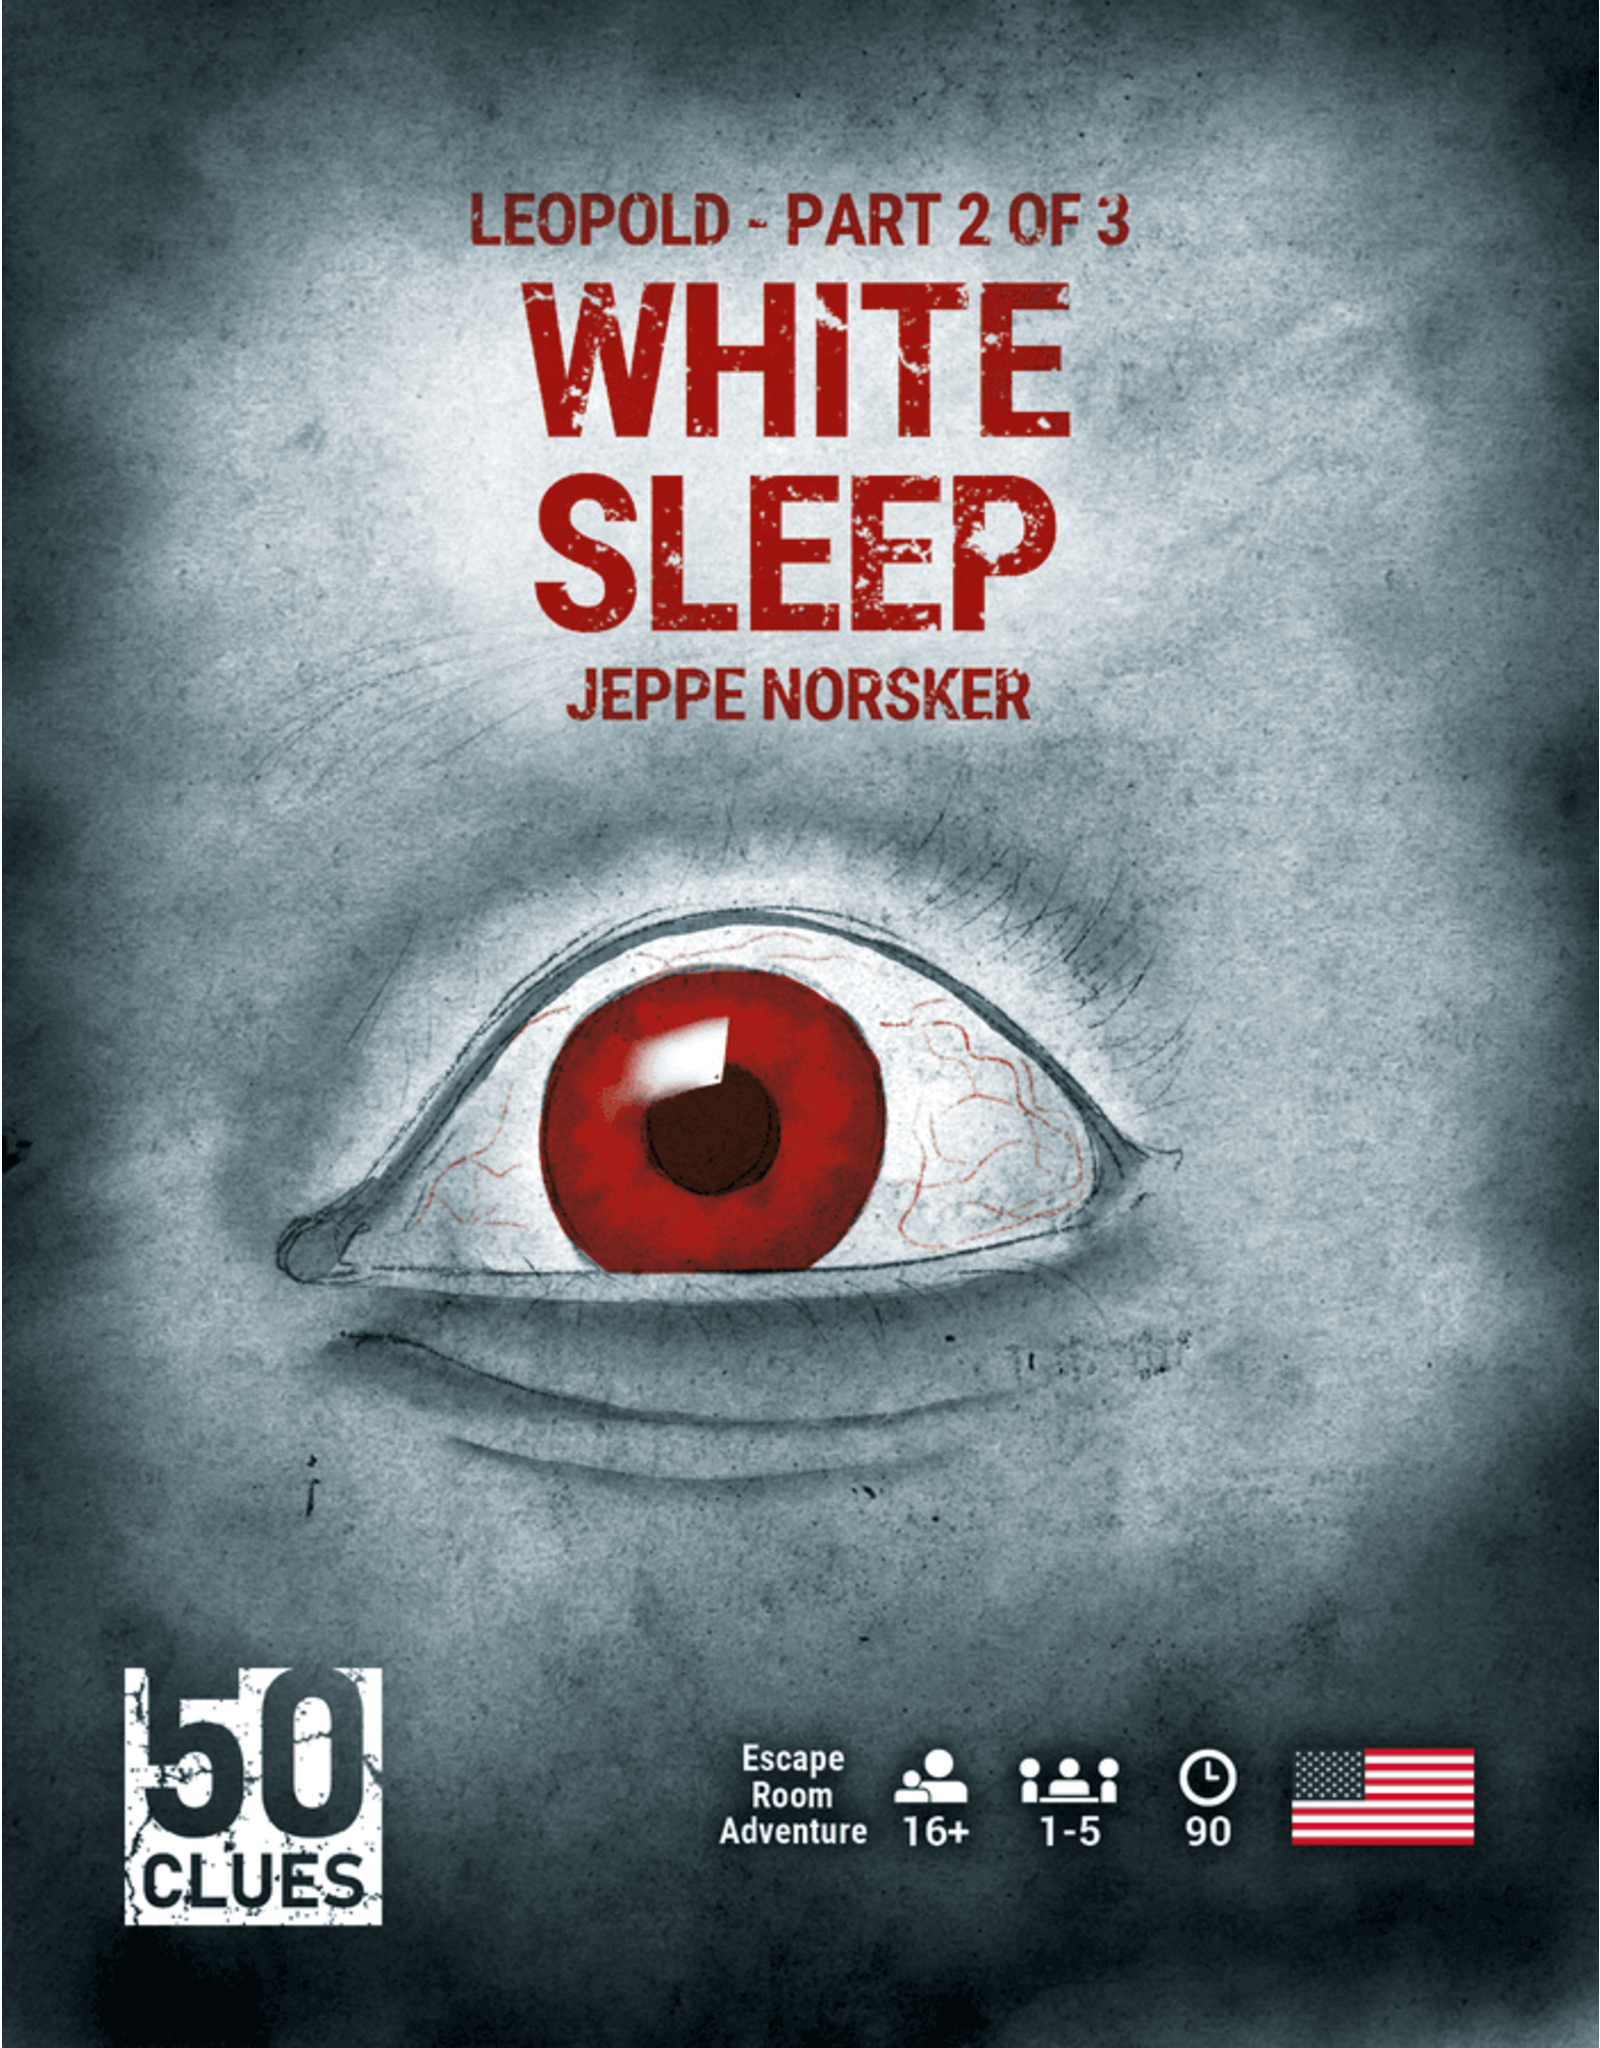 NORSKER GAMES 50 CLUES: WHITE SLEEP (2/3)